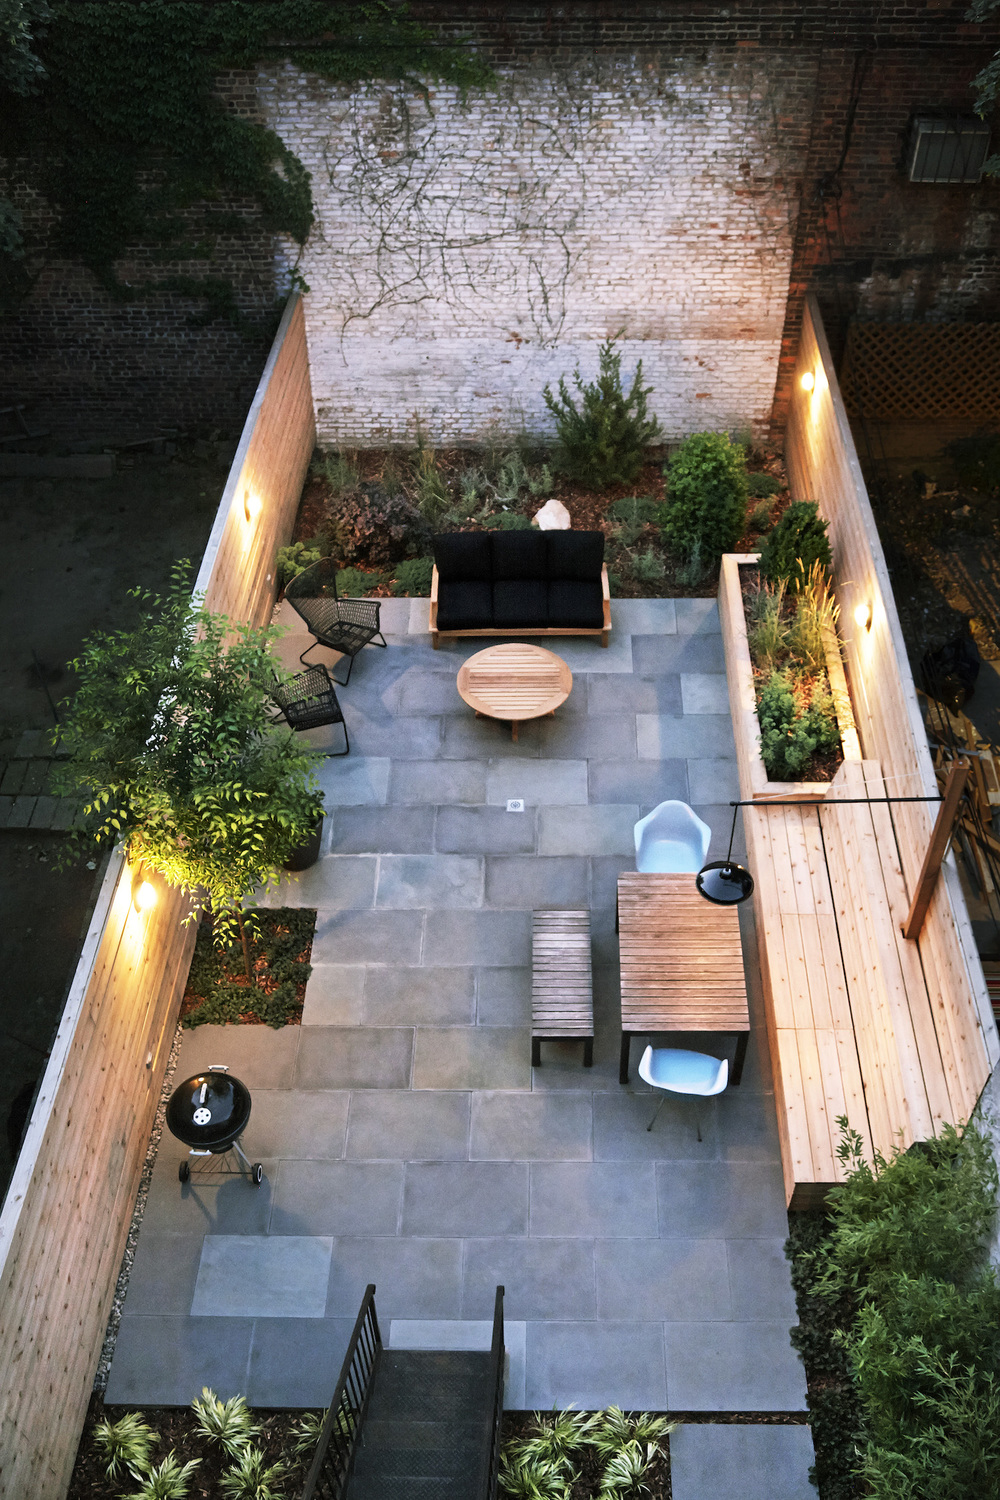 Landscape Design & Architecture Brooklyn | NYC | New Eco Landscapes